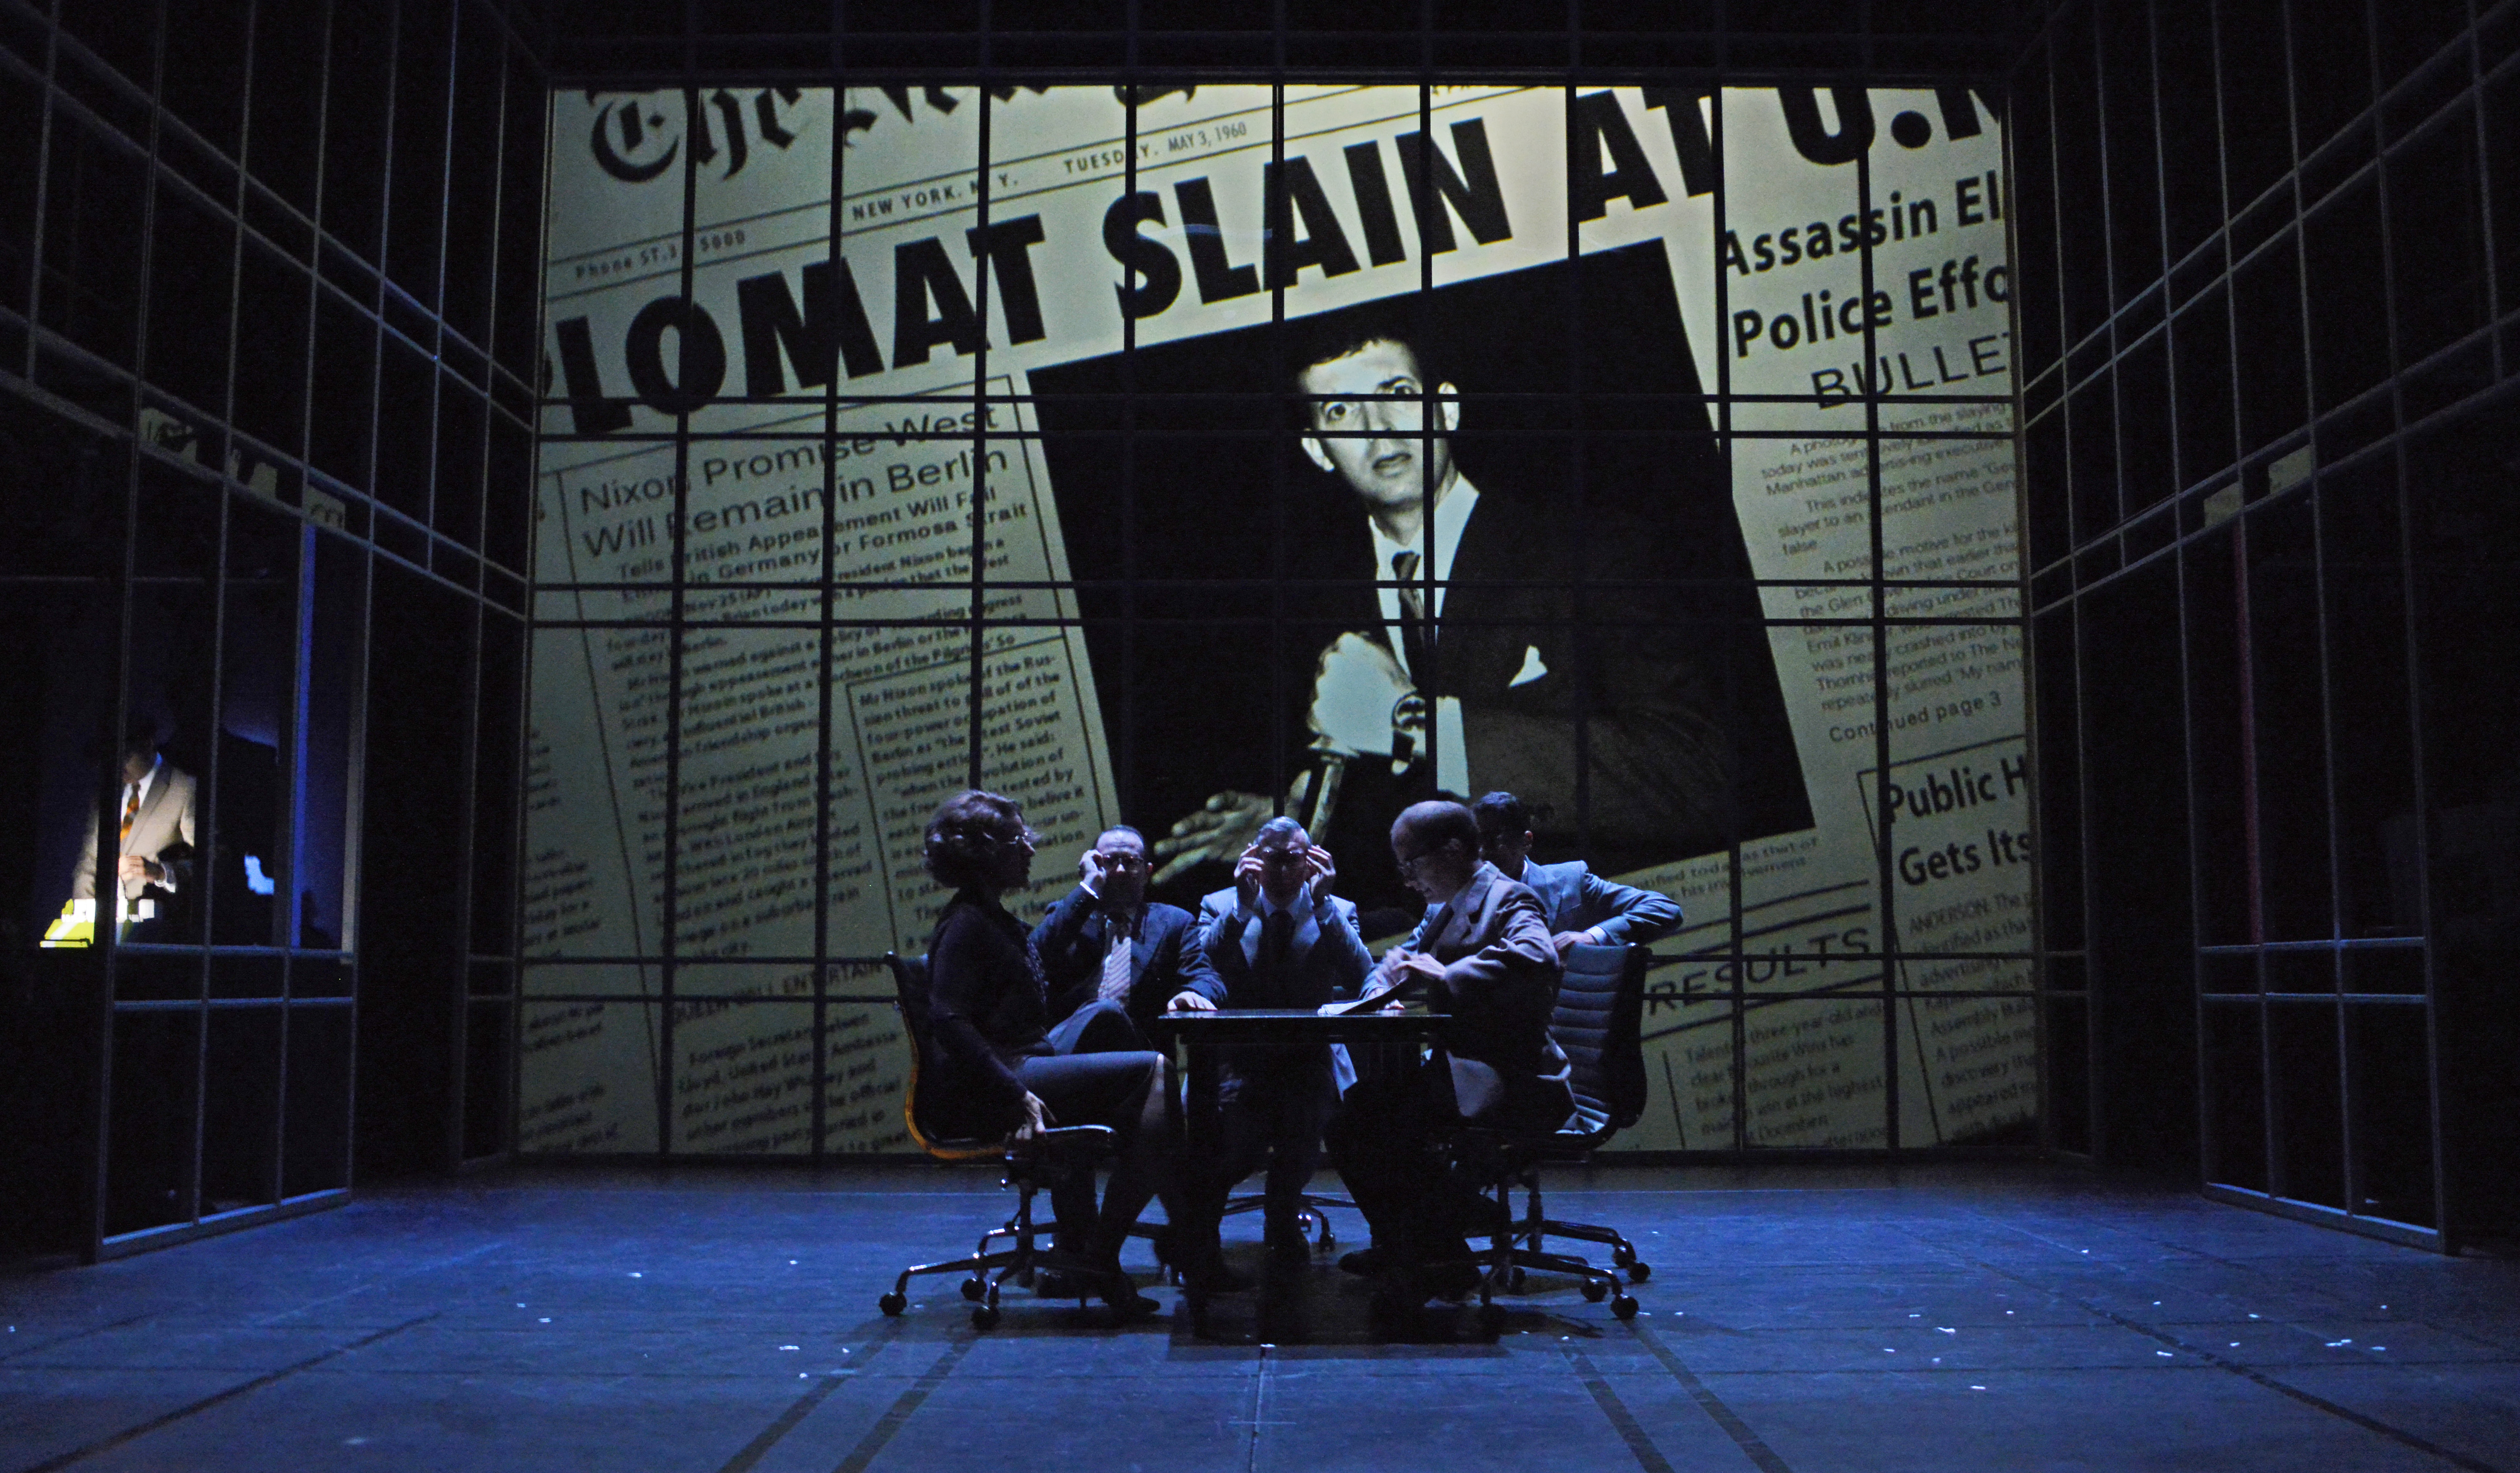 BWW Review: Technical Wizardry Astounds in Mirvish's NORTH BY NORTHWEST